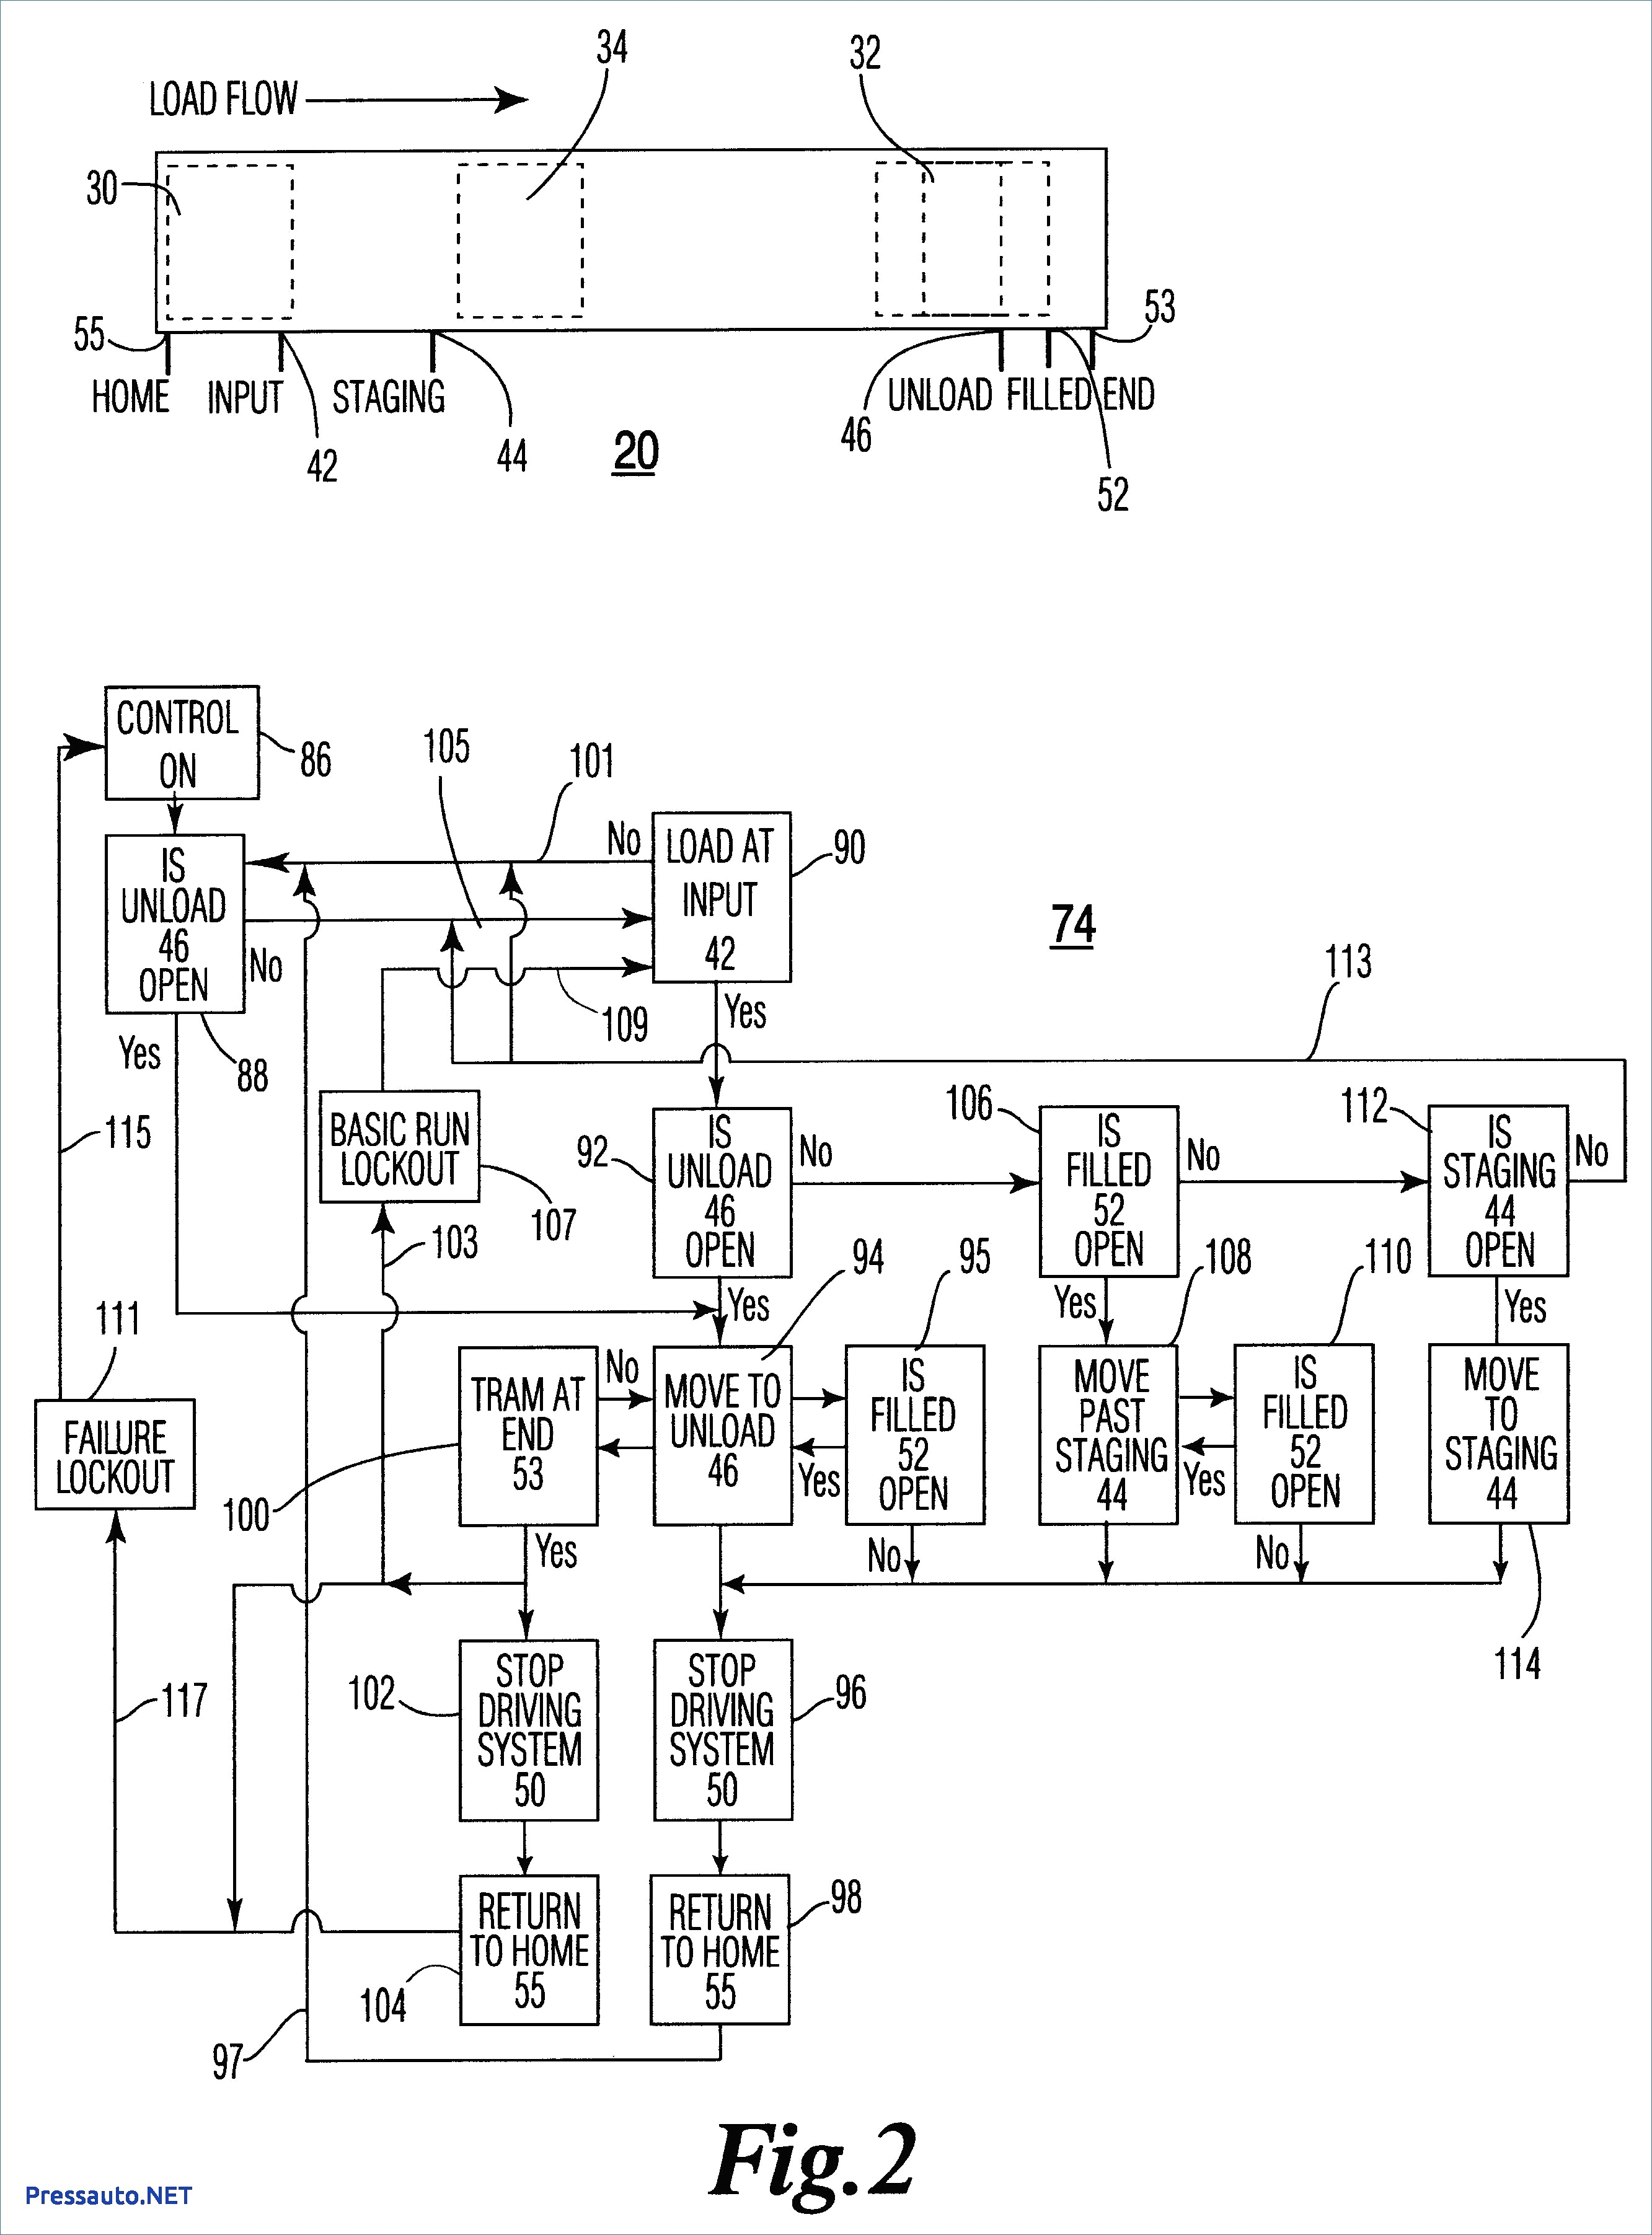 acme buck boost transformer wiring diagram Download-In Acme Buck Boost Transformer Wiring Diagram For 10-k